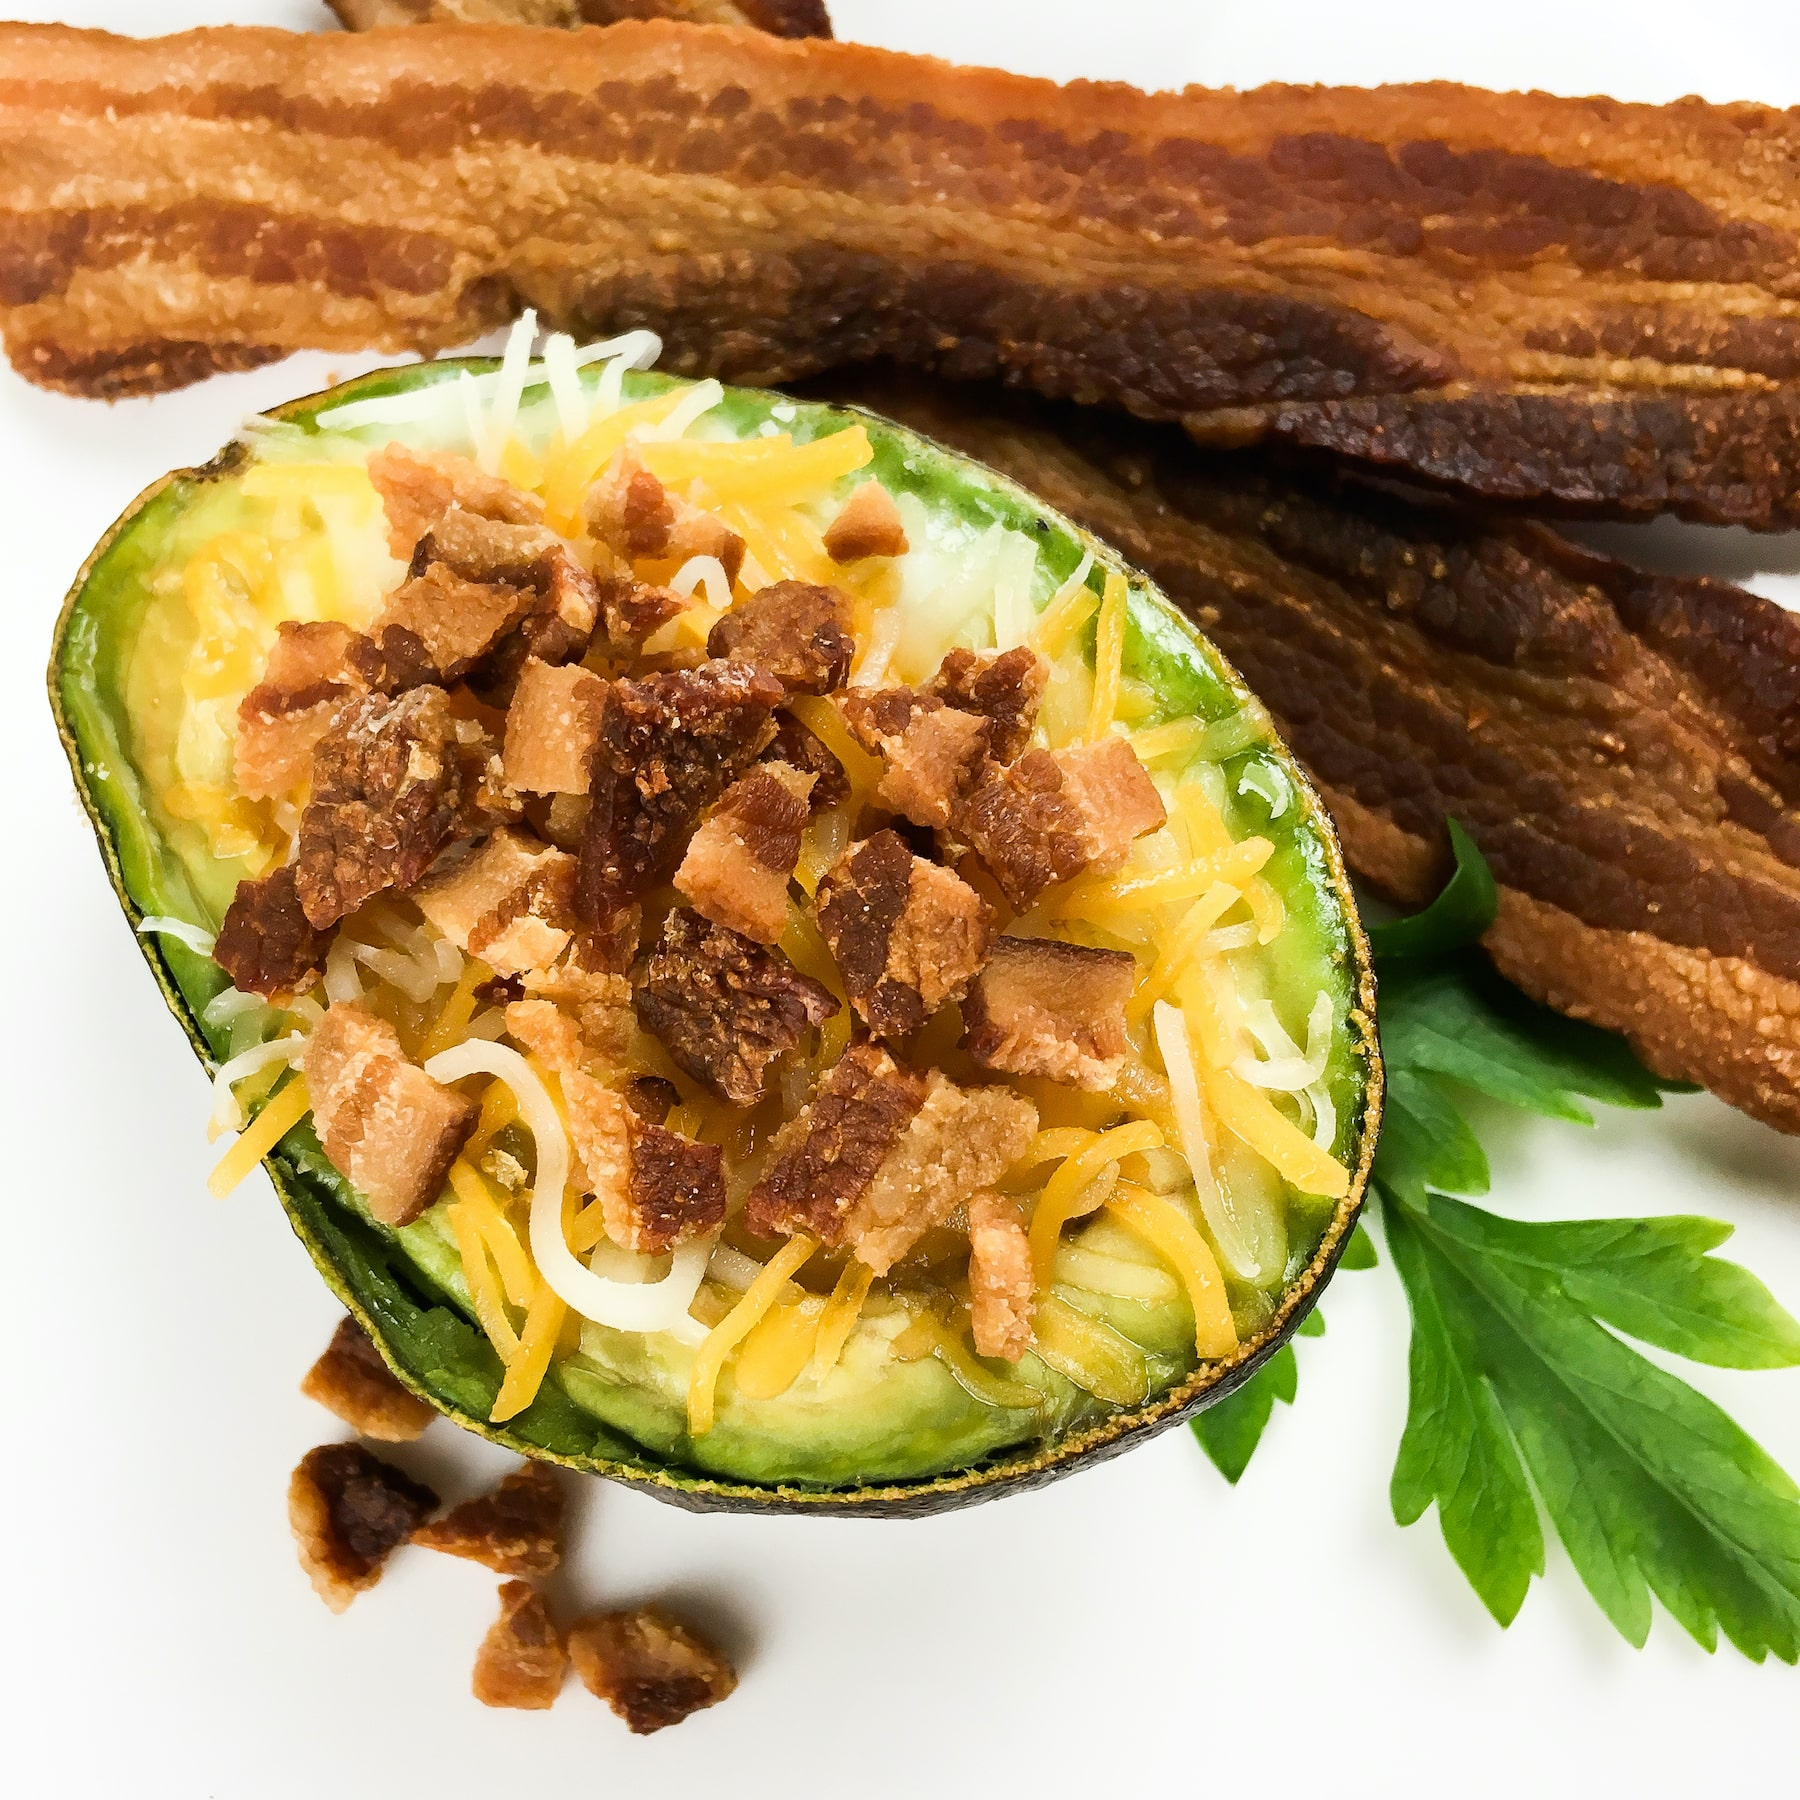 Top each baked avocado half with shredded Cheddar Jack cheese and crispy bacon pieces.